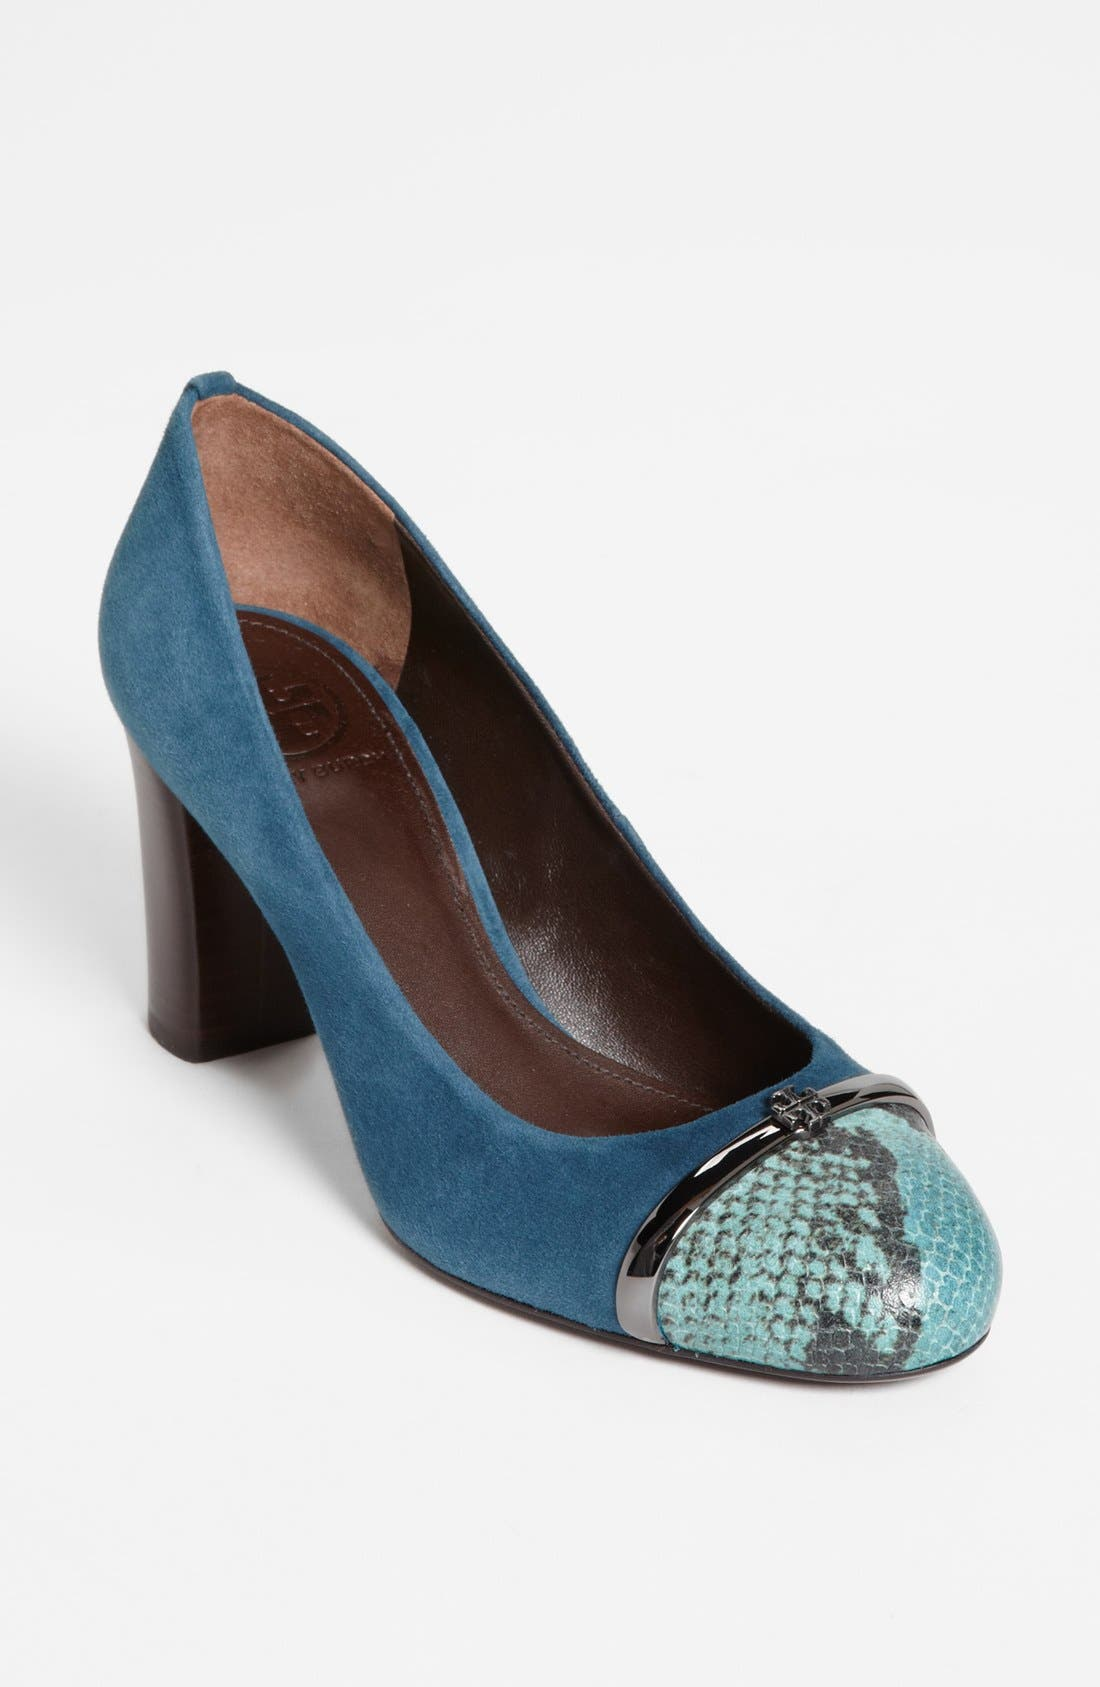 Alternate Image 1 Selected - Tory Burch 'Pacey' Pump